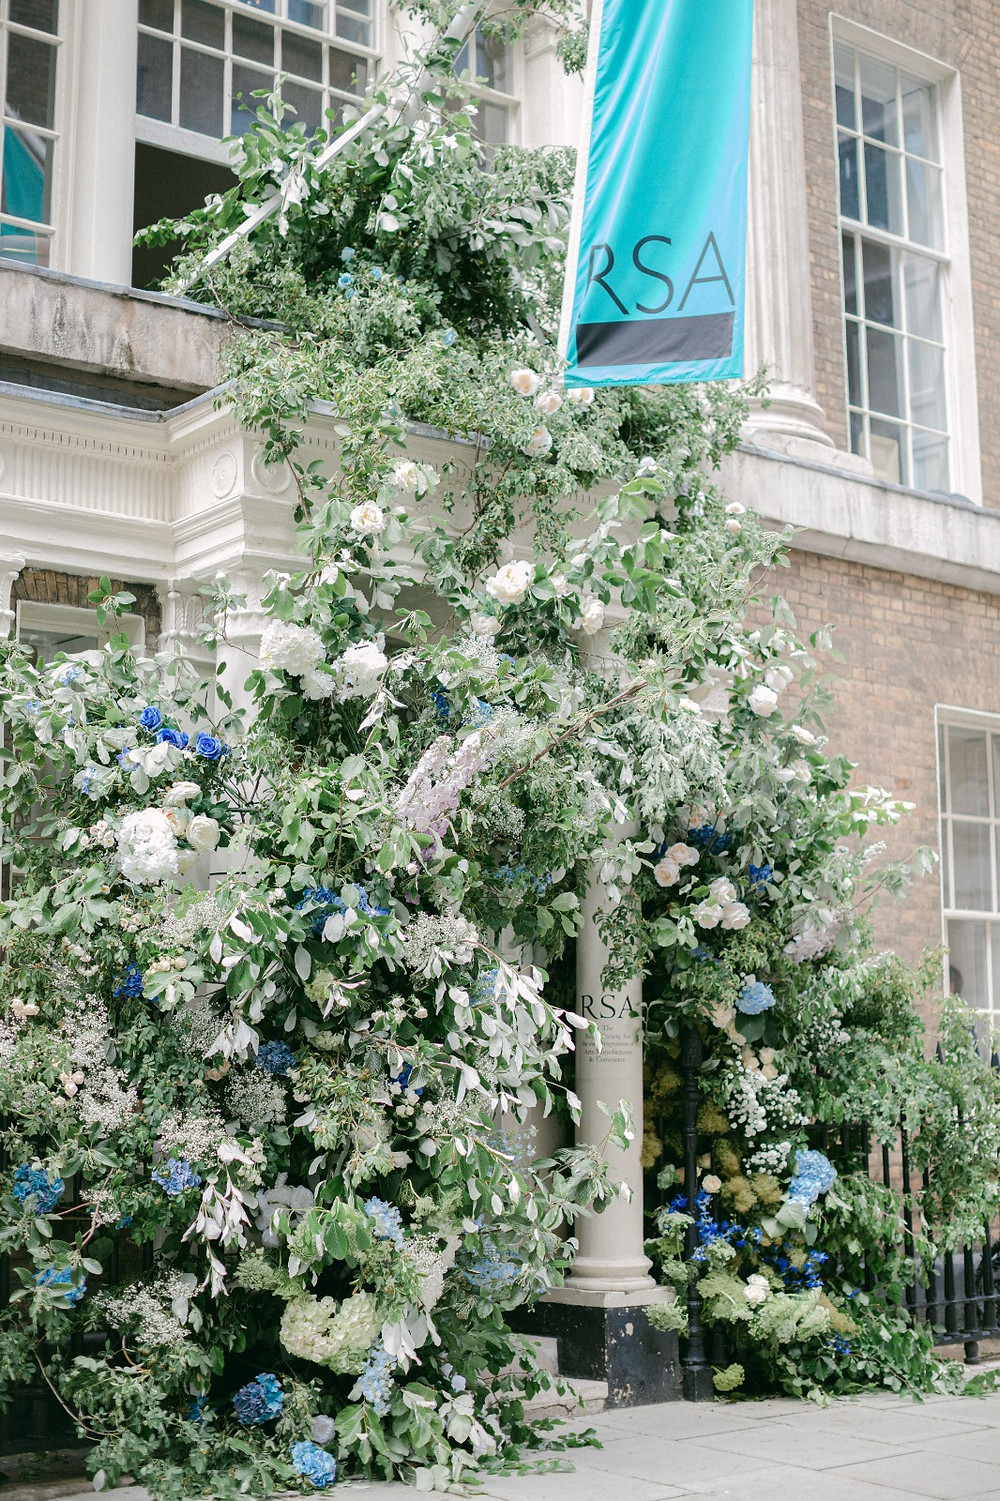 Wedding Floral Arch at RSA House London with Weddings by Jenna Hewitt and All for Love London